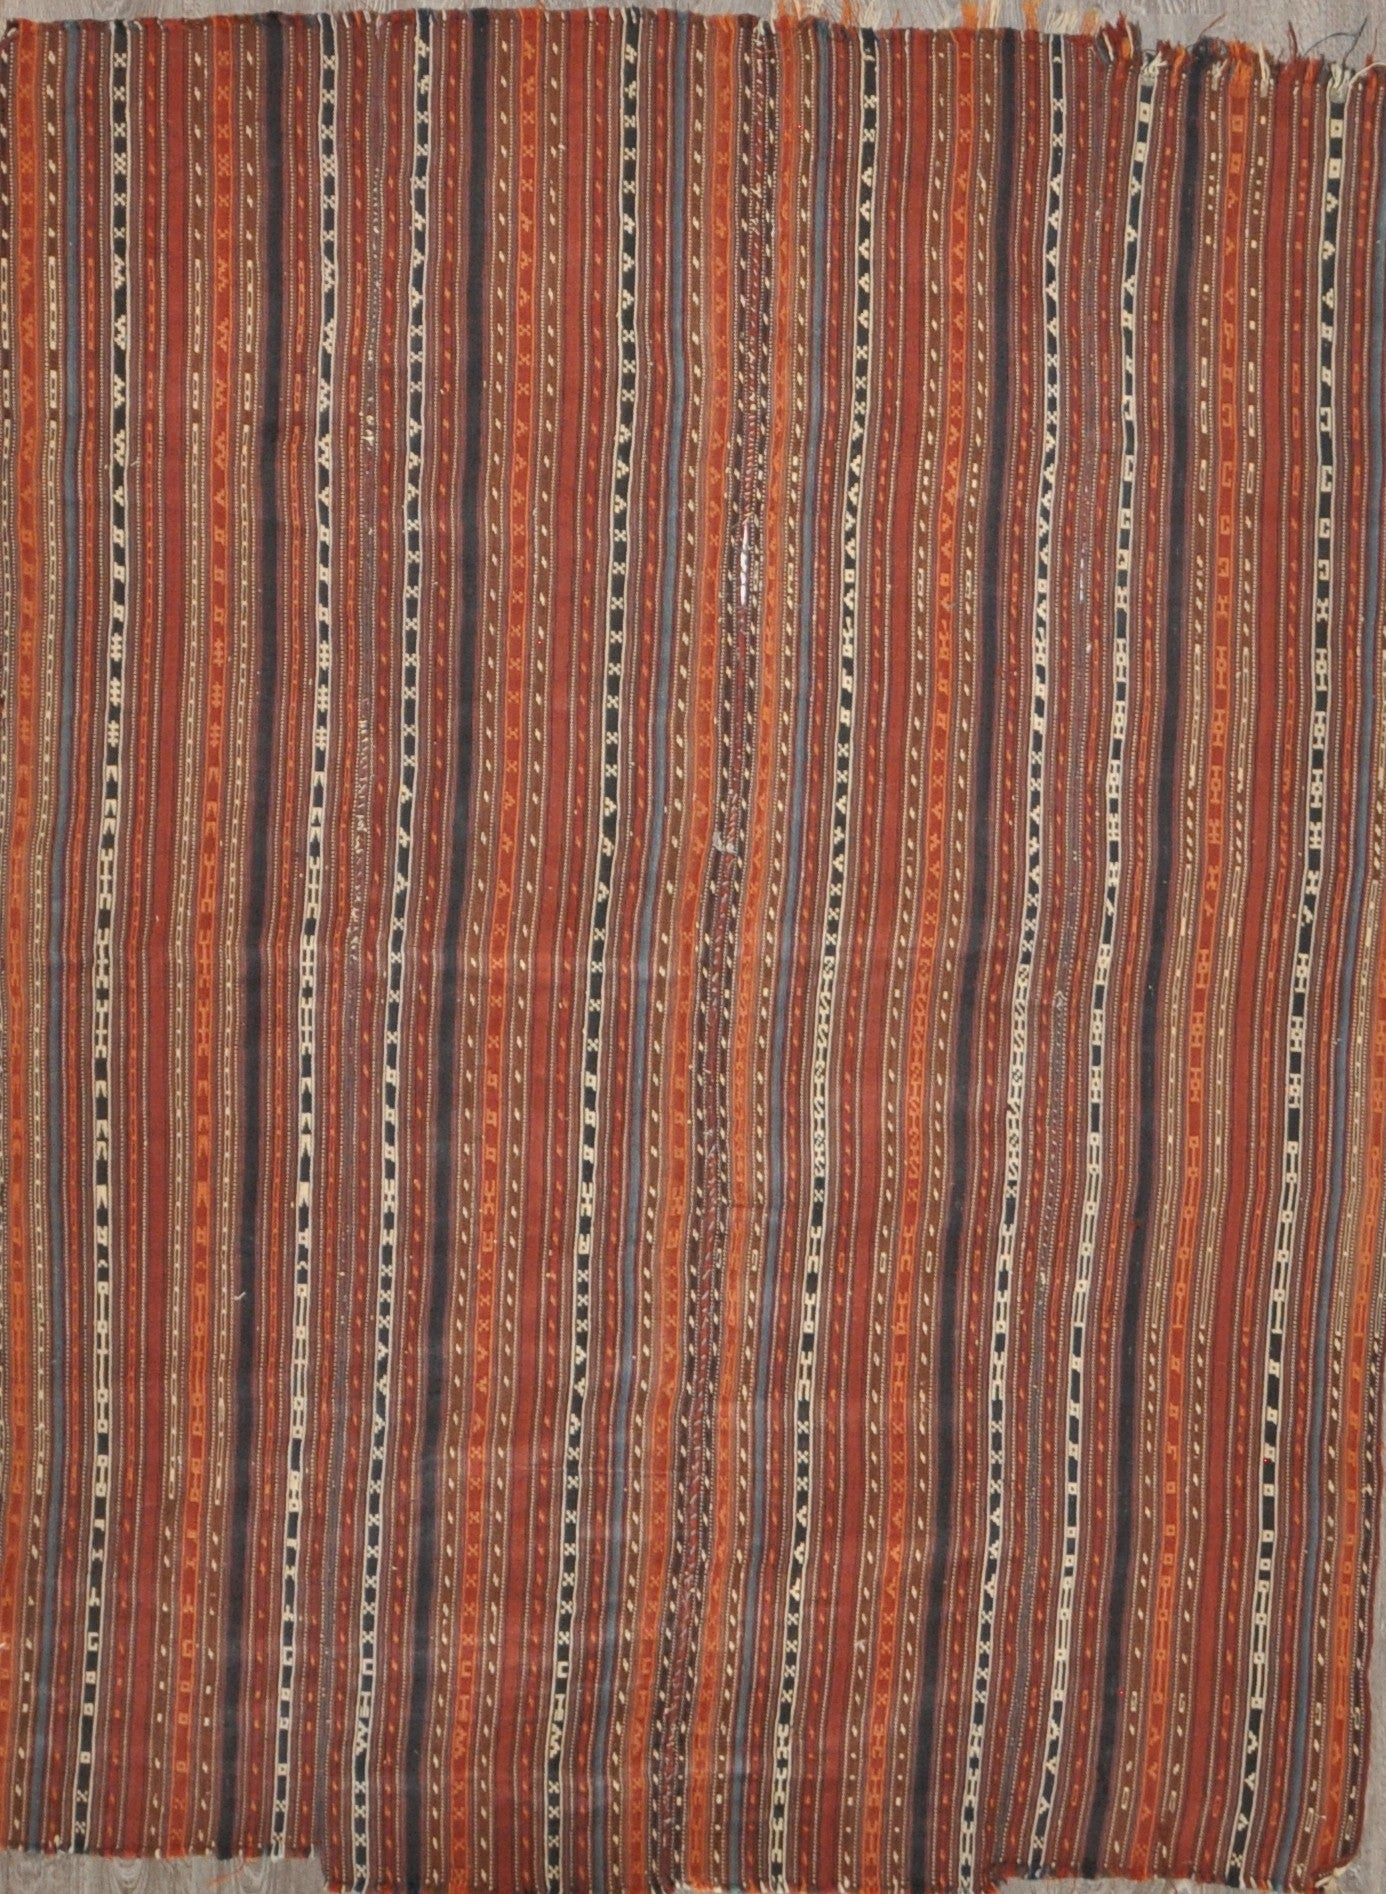 5.4x7.0 Antique persian kilim #99161